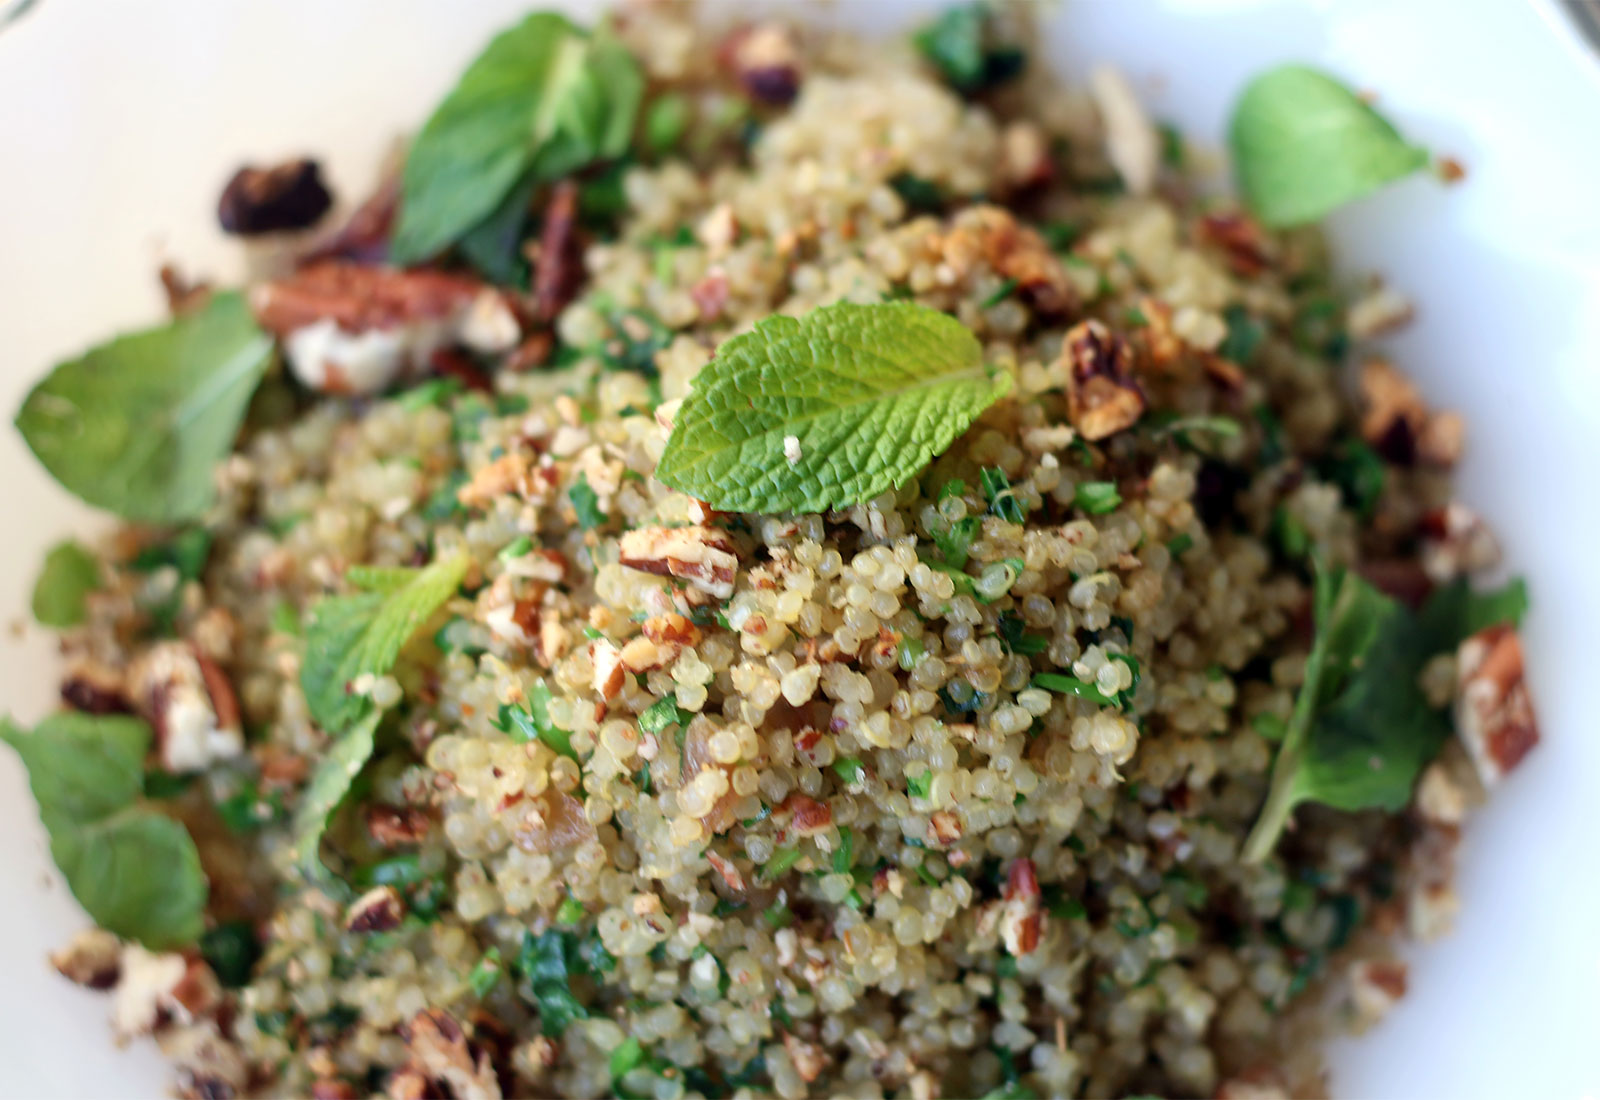 Quinoa pilaf at Flower + Bone restaurant in Santa Rosa. Heather Irwin/Sonoma Magazine.